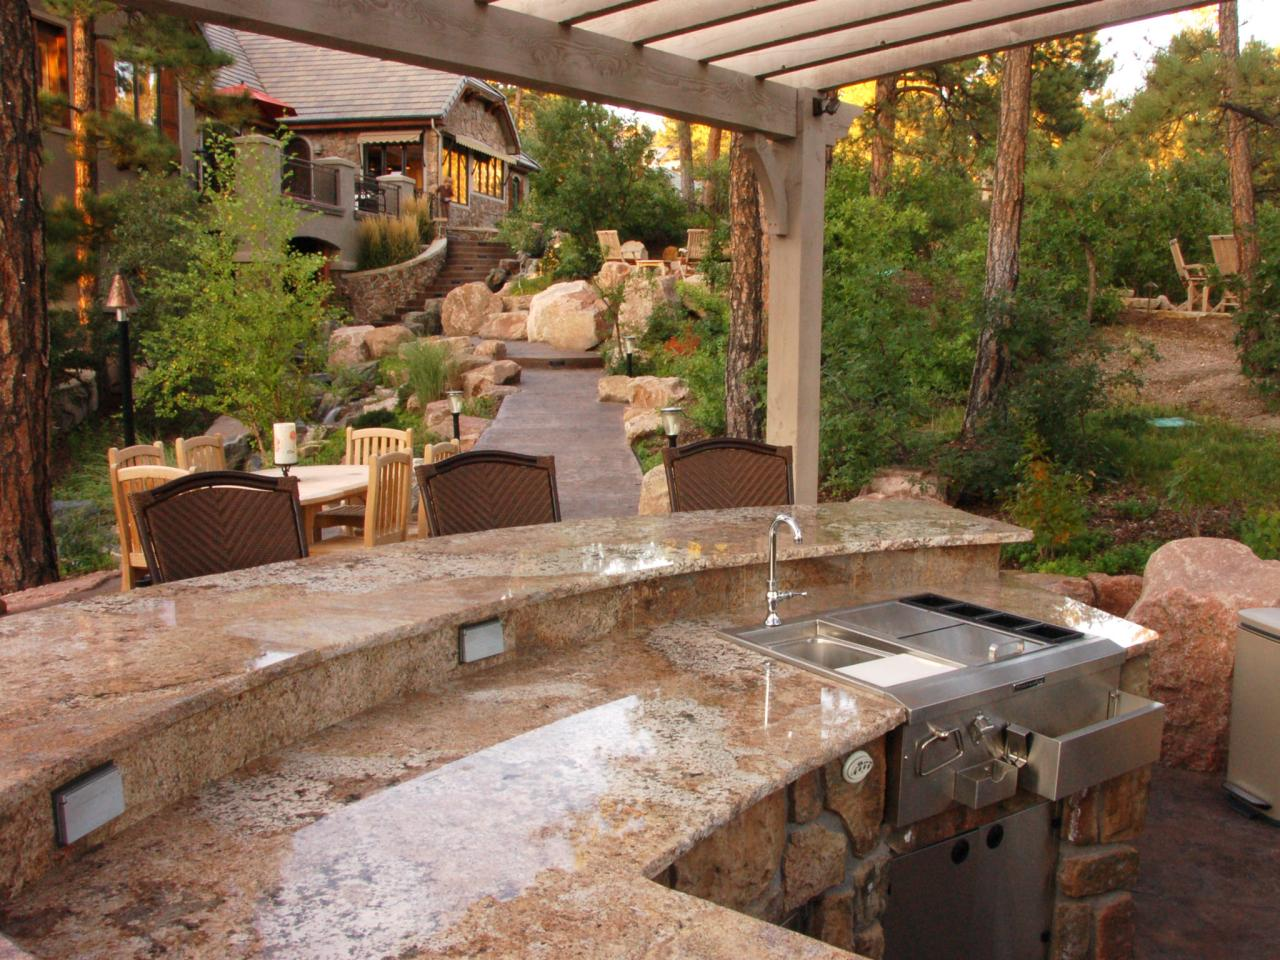 Merveilleux Outdoor Kitchen Design Ideas